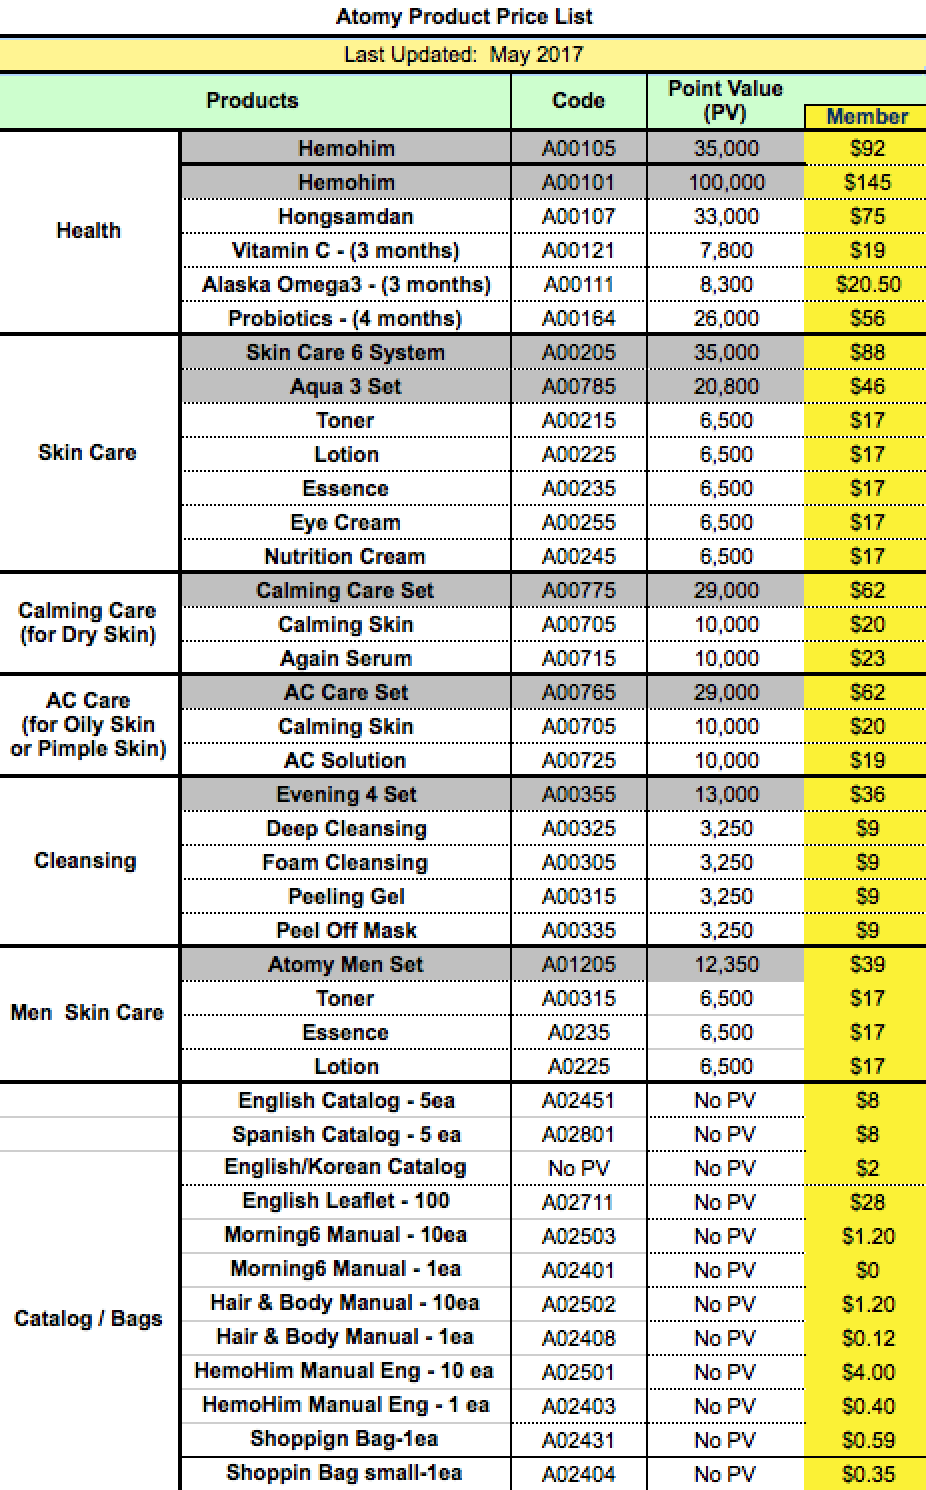 Shampoo Dispenser Atomy England Price List - Atomysmart